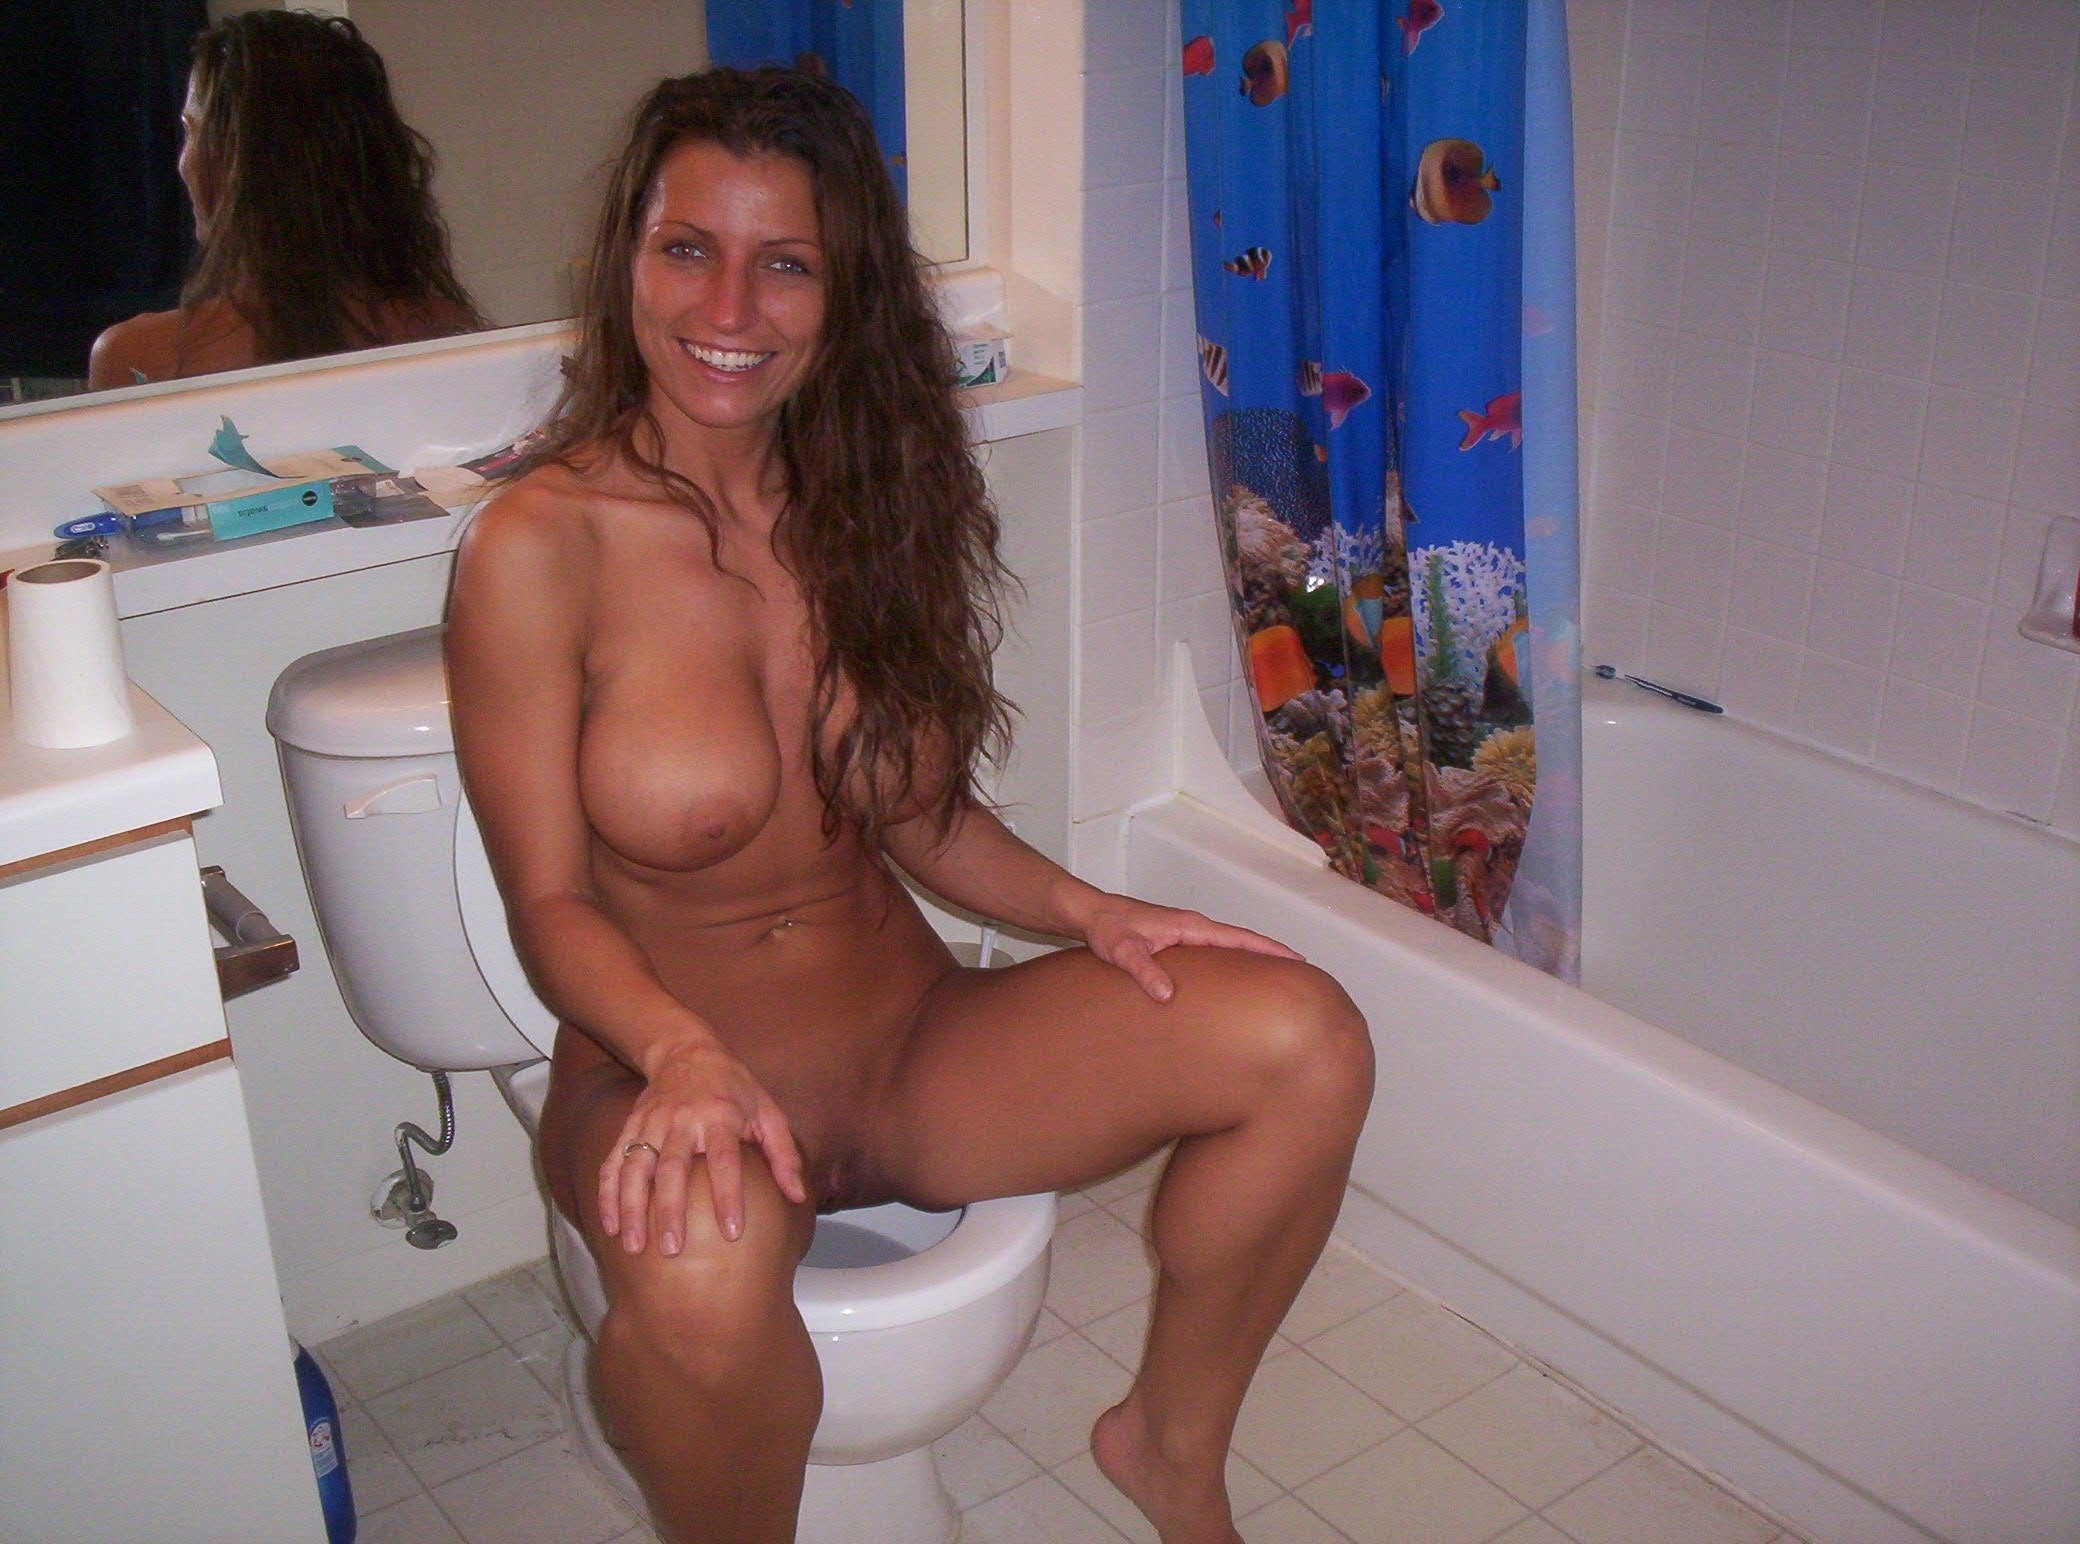 Hot milf caught nude #4